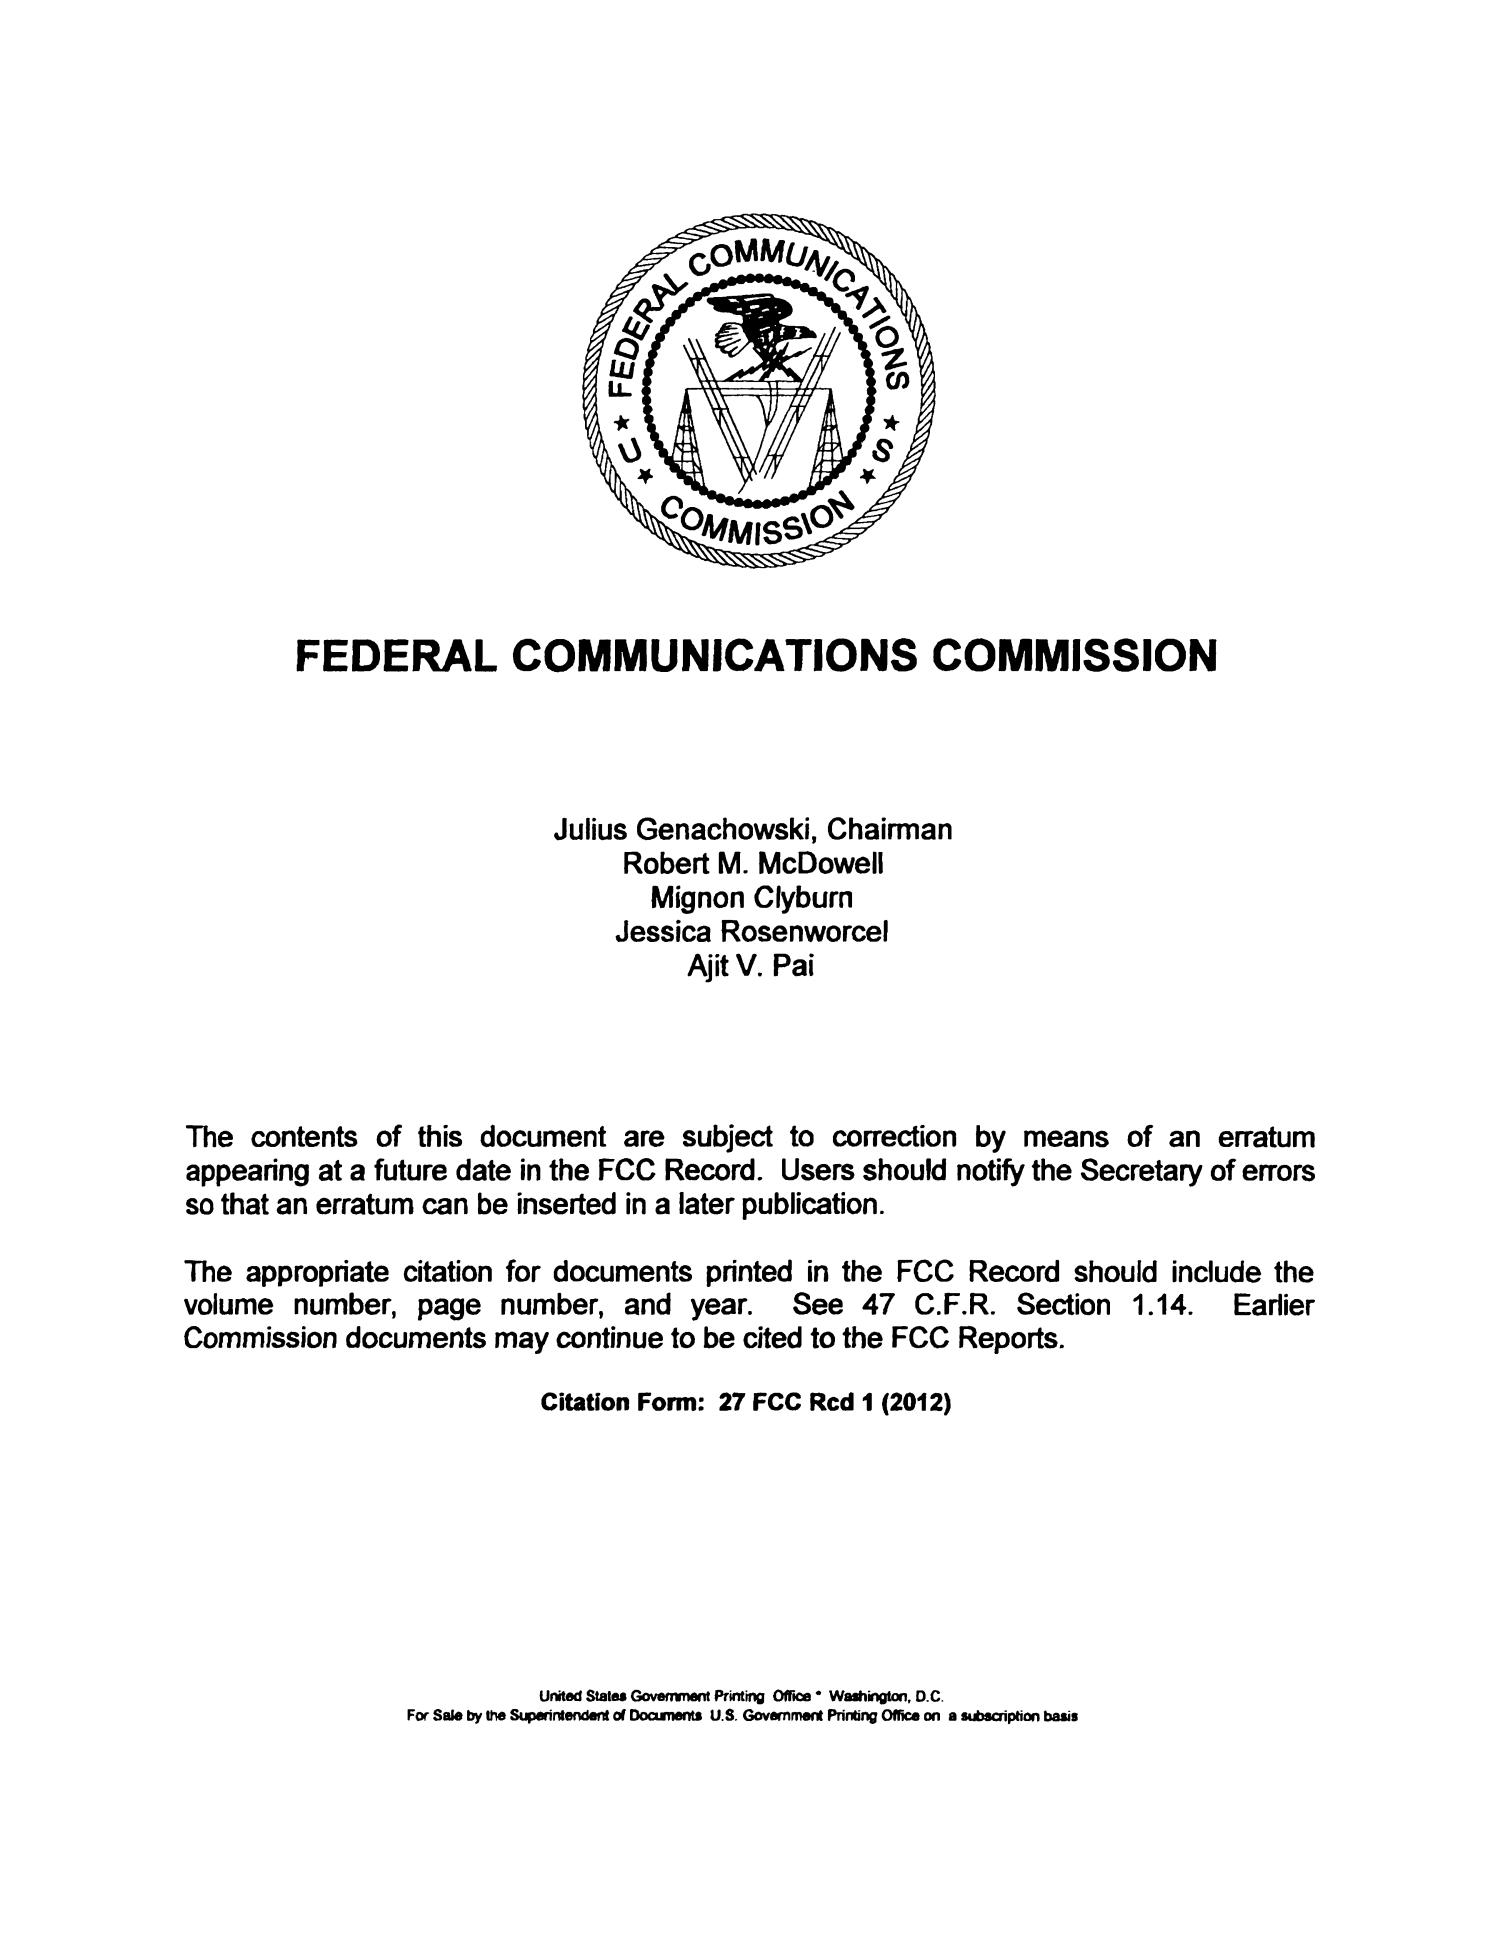 FCC Record, Volume 27, No. 11, Pages 8850 to 9847, July 30 - August 17, 2012                                                                                                      None